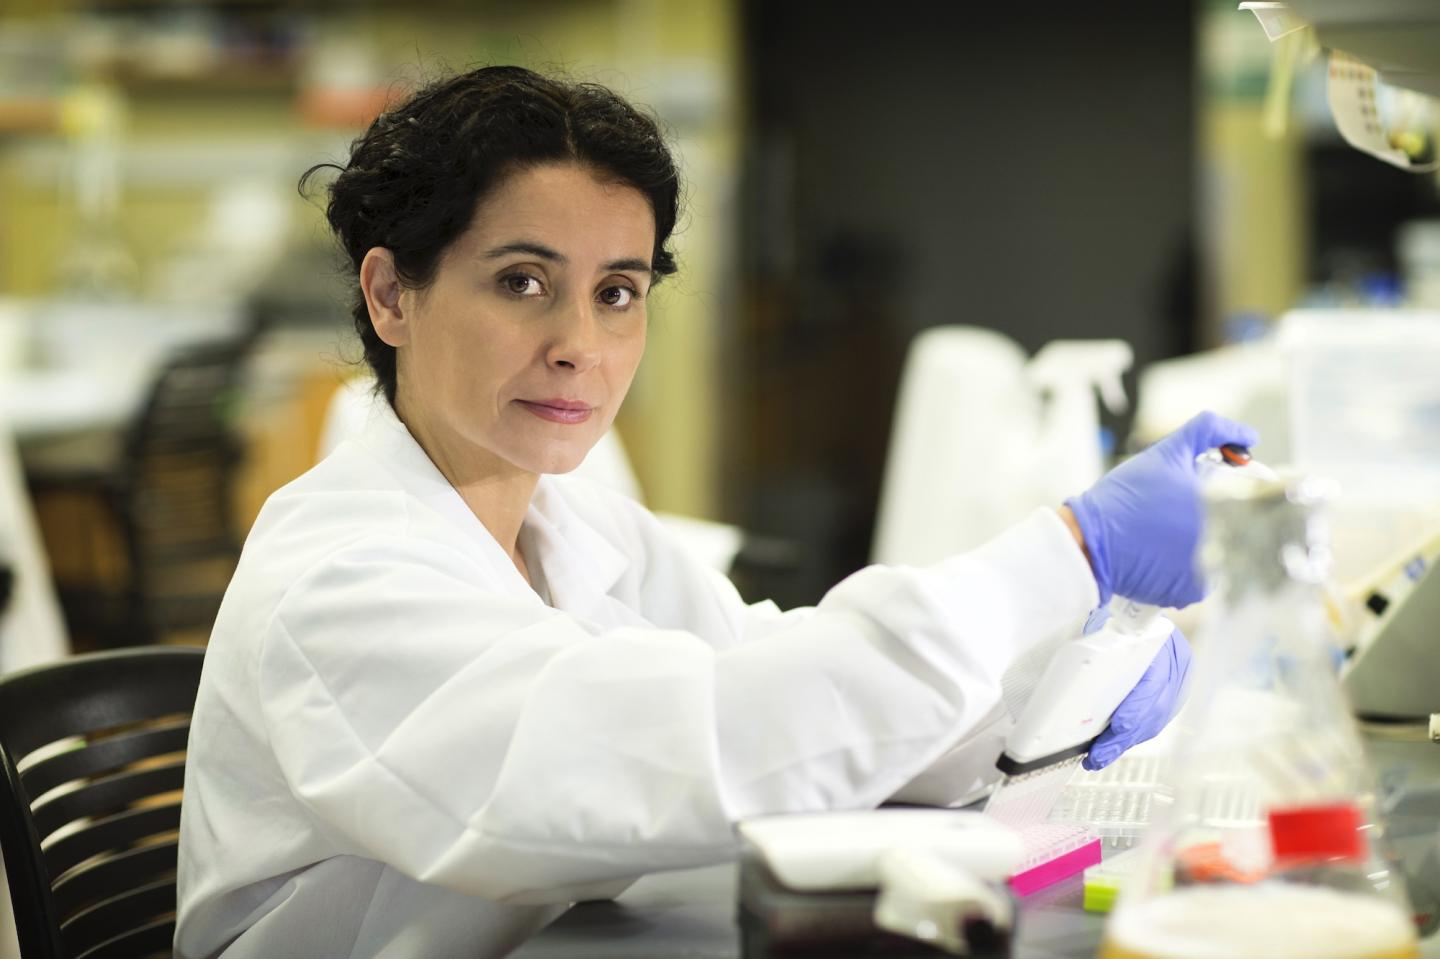 Diet, Gut Microbes Affect Cancer Treatment Outcomes, Research Suggests